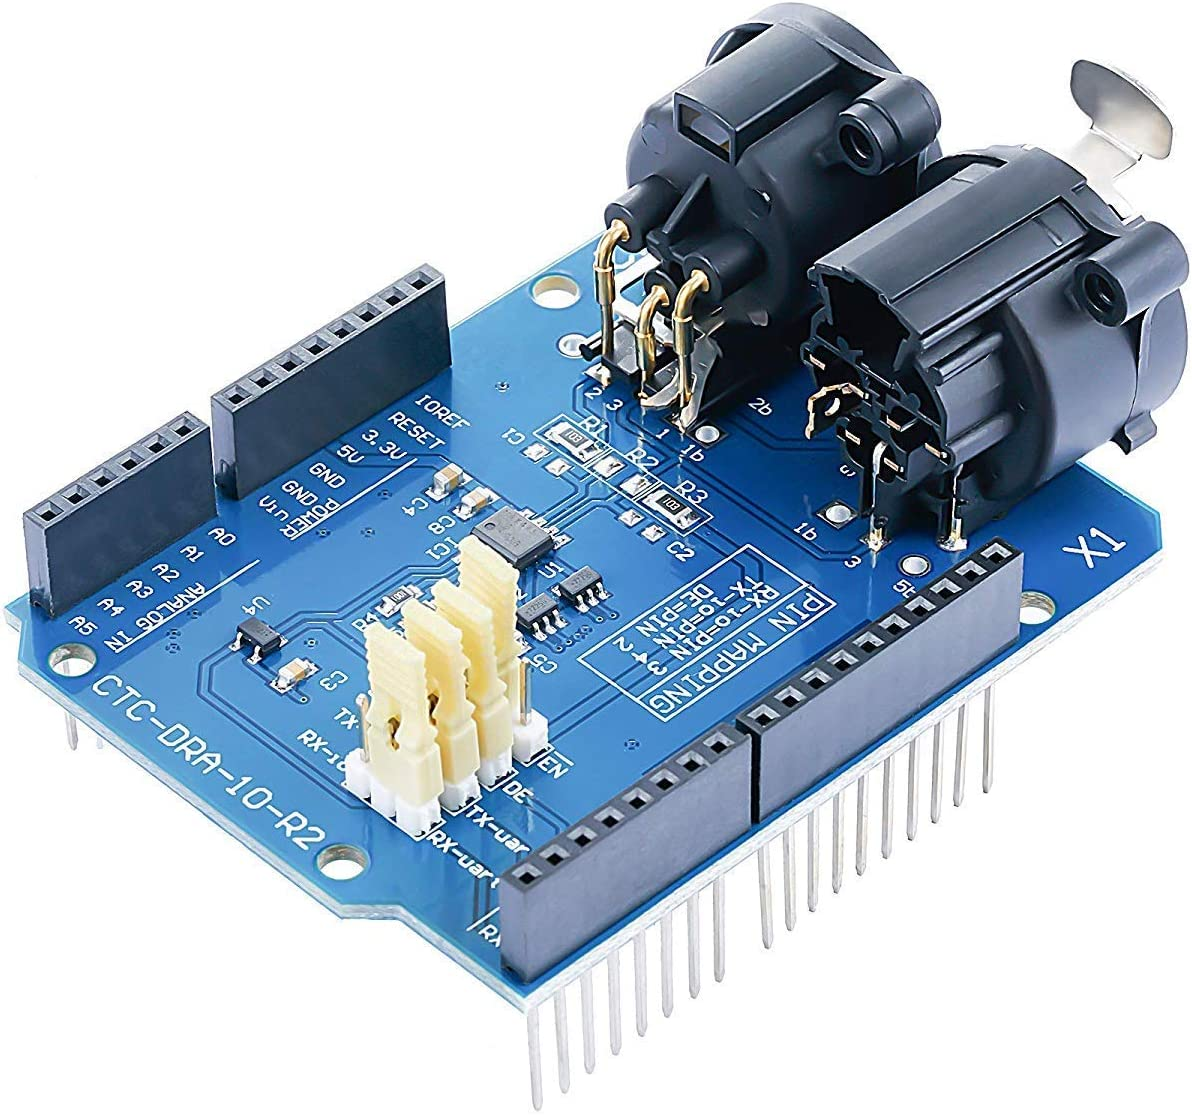 pzsmocn DMX Shield for DMX512 Network and Arduino Master Device. LED//Music Remote Device Management Functions Extended DMX Master and Slave Features Onboard MAX485 Chip